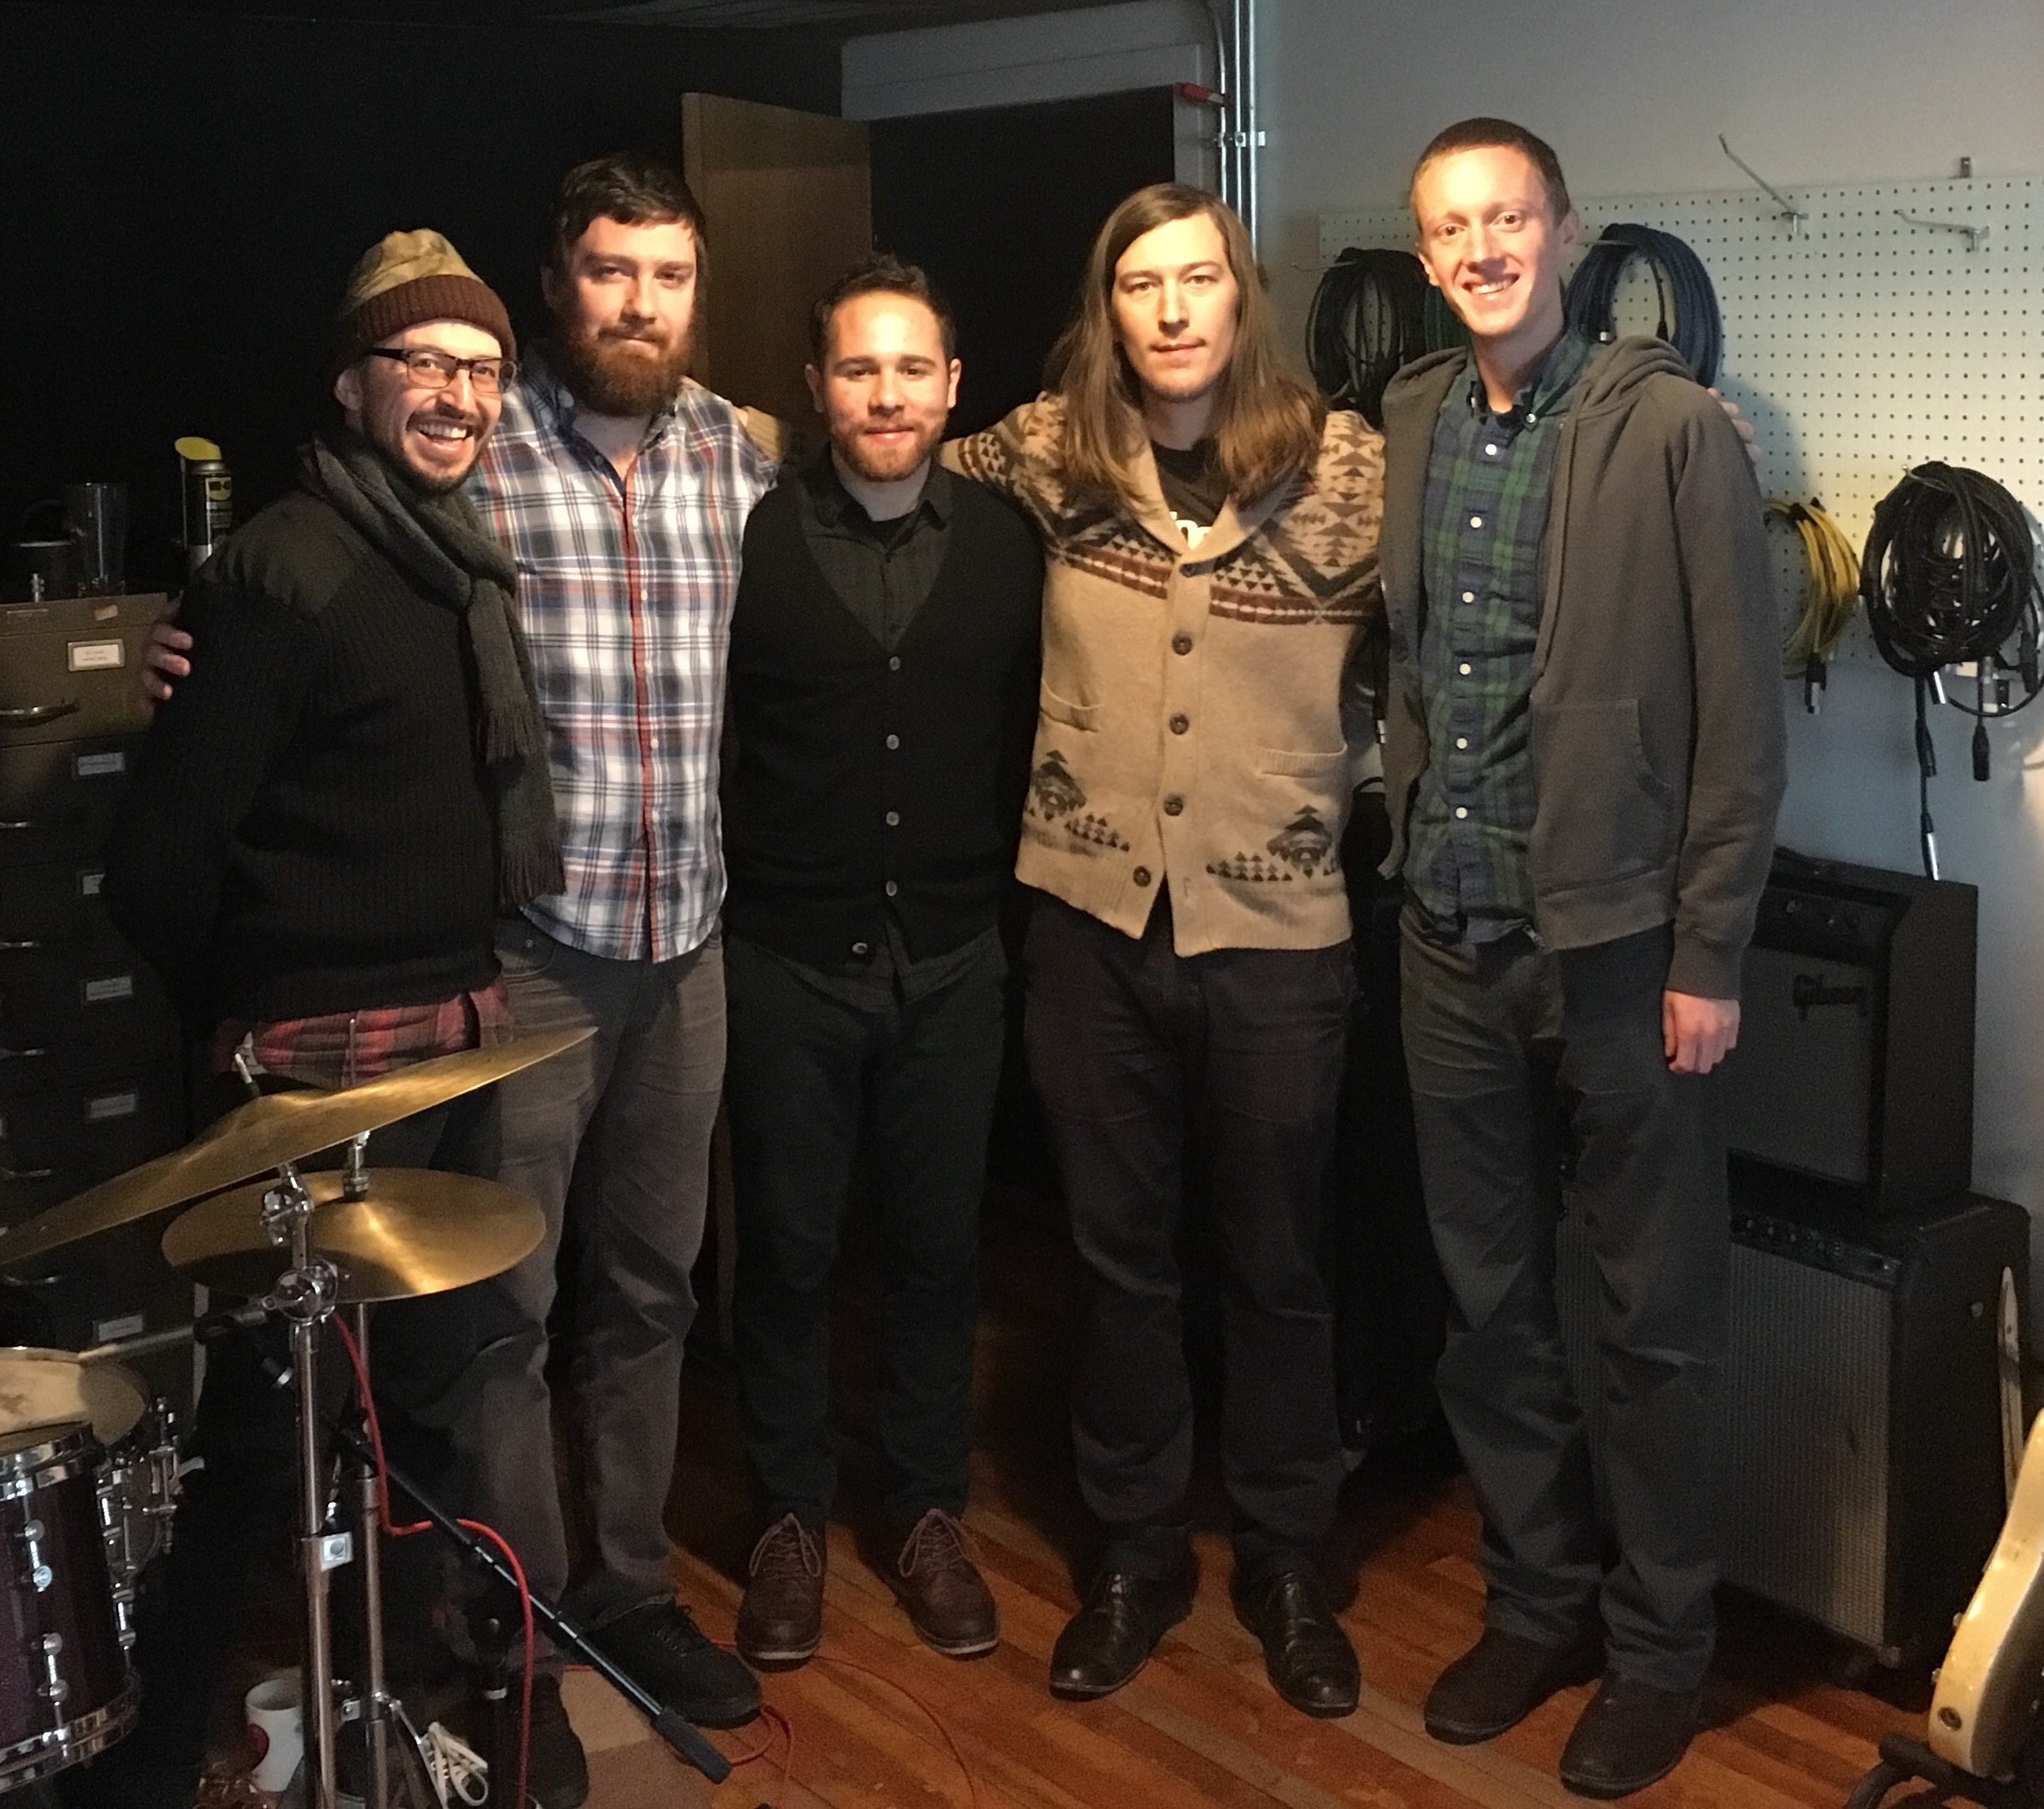 (L-R) Nick Broste (engineer), Neil Hemphill (dr), myself, Matt Ulery (bass), and Artie Black at the end of our two days of tracking at Minbal Studios in Chicago. (December 13 - 14, 2016)